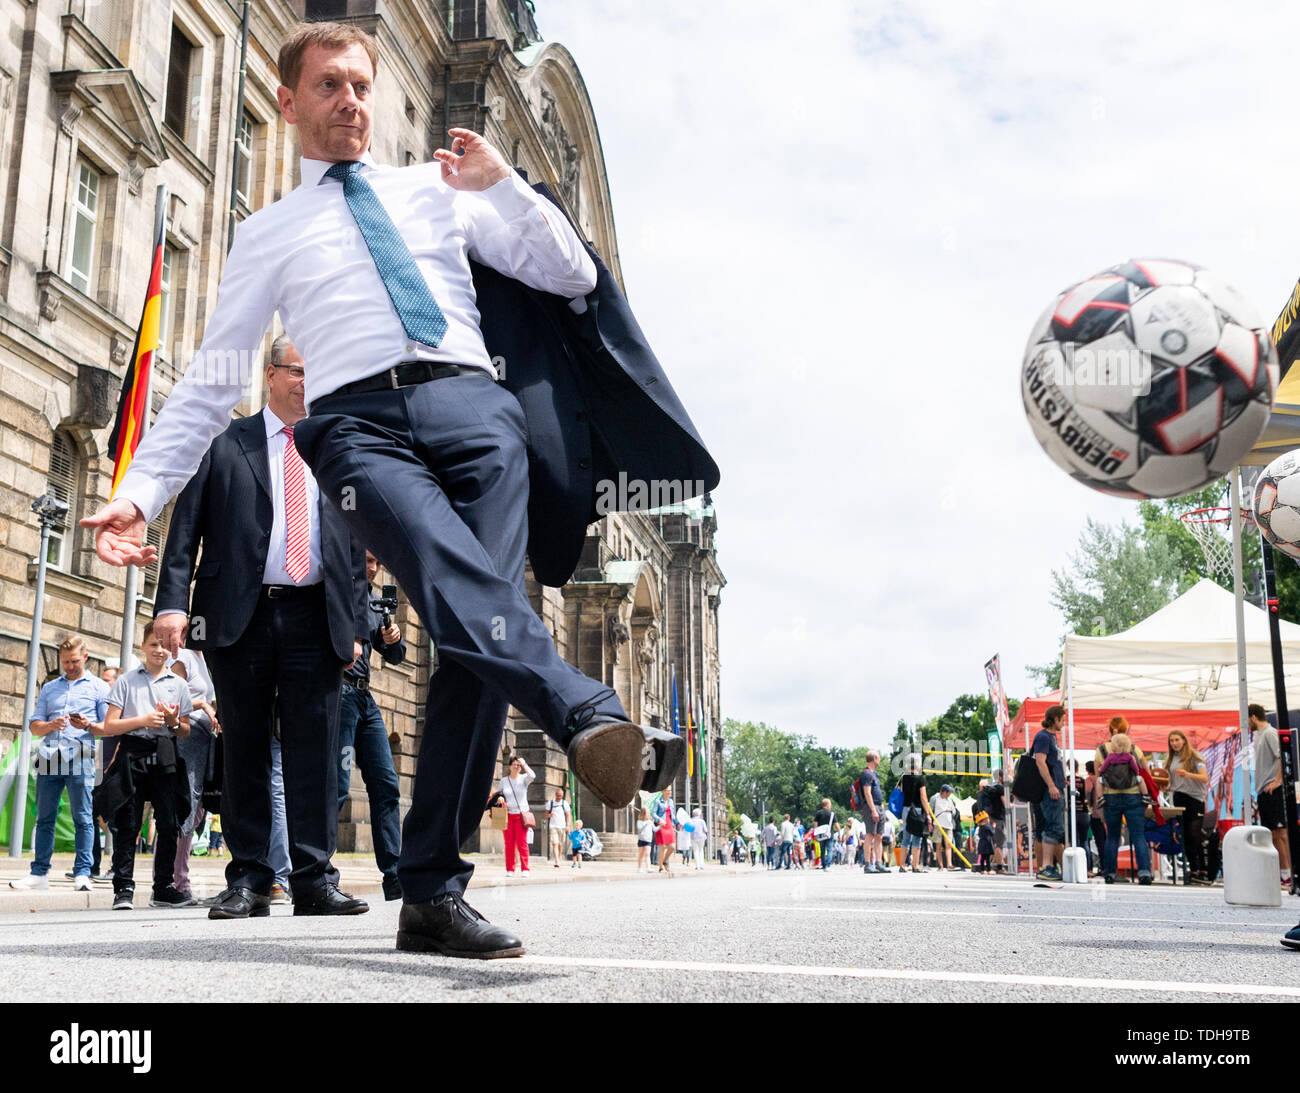 Dresden, Germany. 16th June, 2019. Michael Kretschmer (CDU), Prime Minister of Saxony, plays football in front of the Saxon State Chancellery during the 17th day of the Open Government Quarter. Interested citizens have the opportunity to look behind otherwise closed doors and inform themselves about politics and administration in the Free State. Credit: Robert Michael/dpa-Zentralbild/ZB/dpa/Alamy Live News Stock Photo